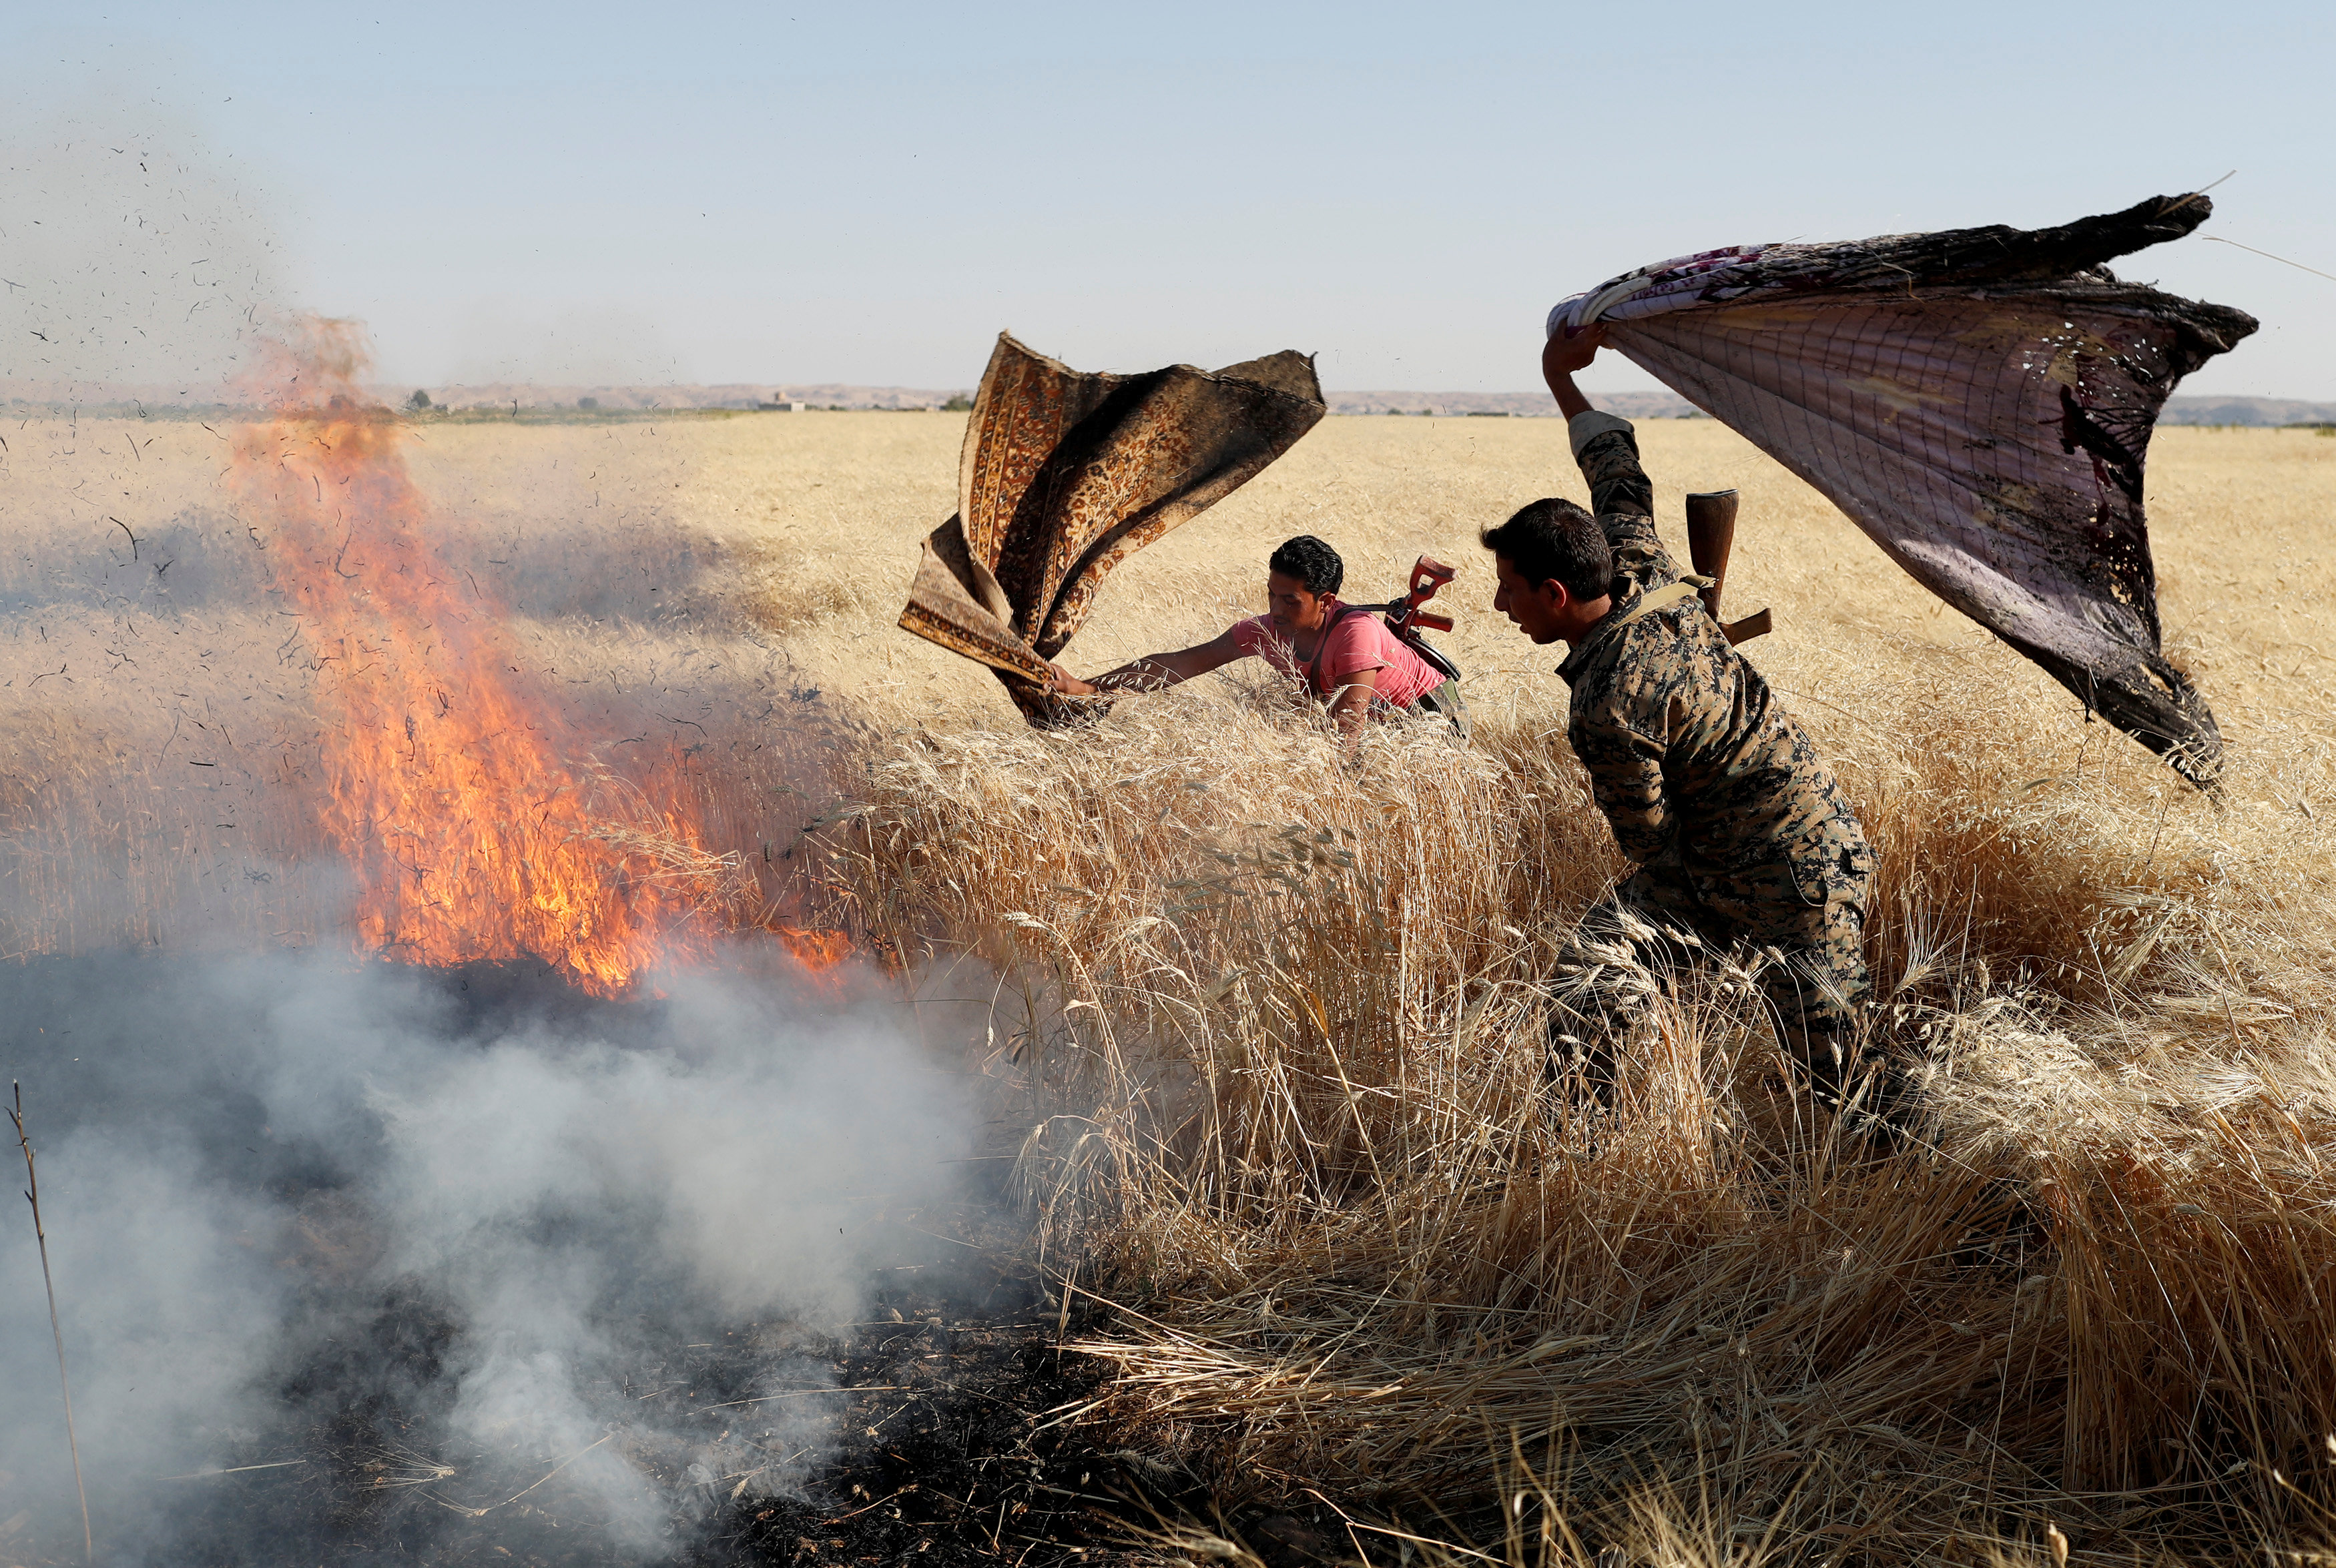 Kurdish fighters extinguishing fire in a wheat field after clashes with ISIS - December 1, 2017 (Reuters)